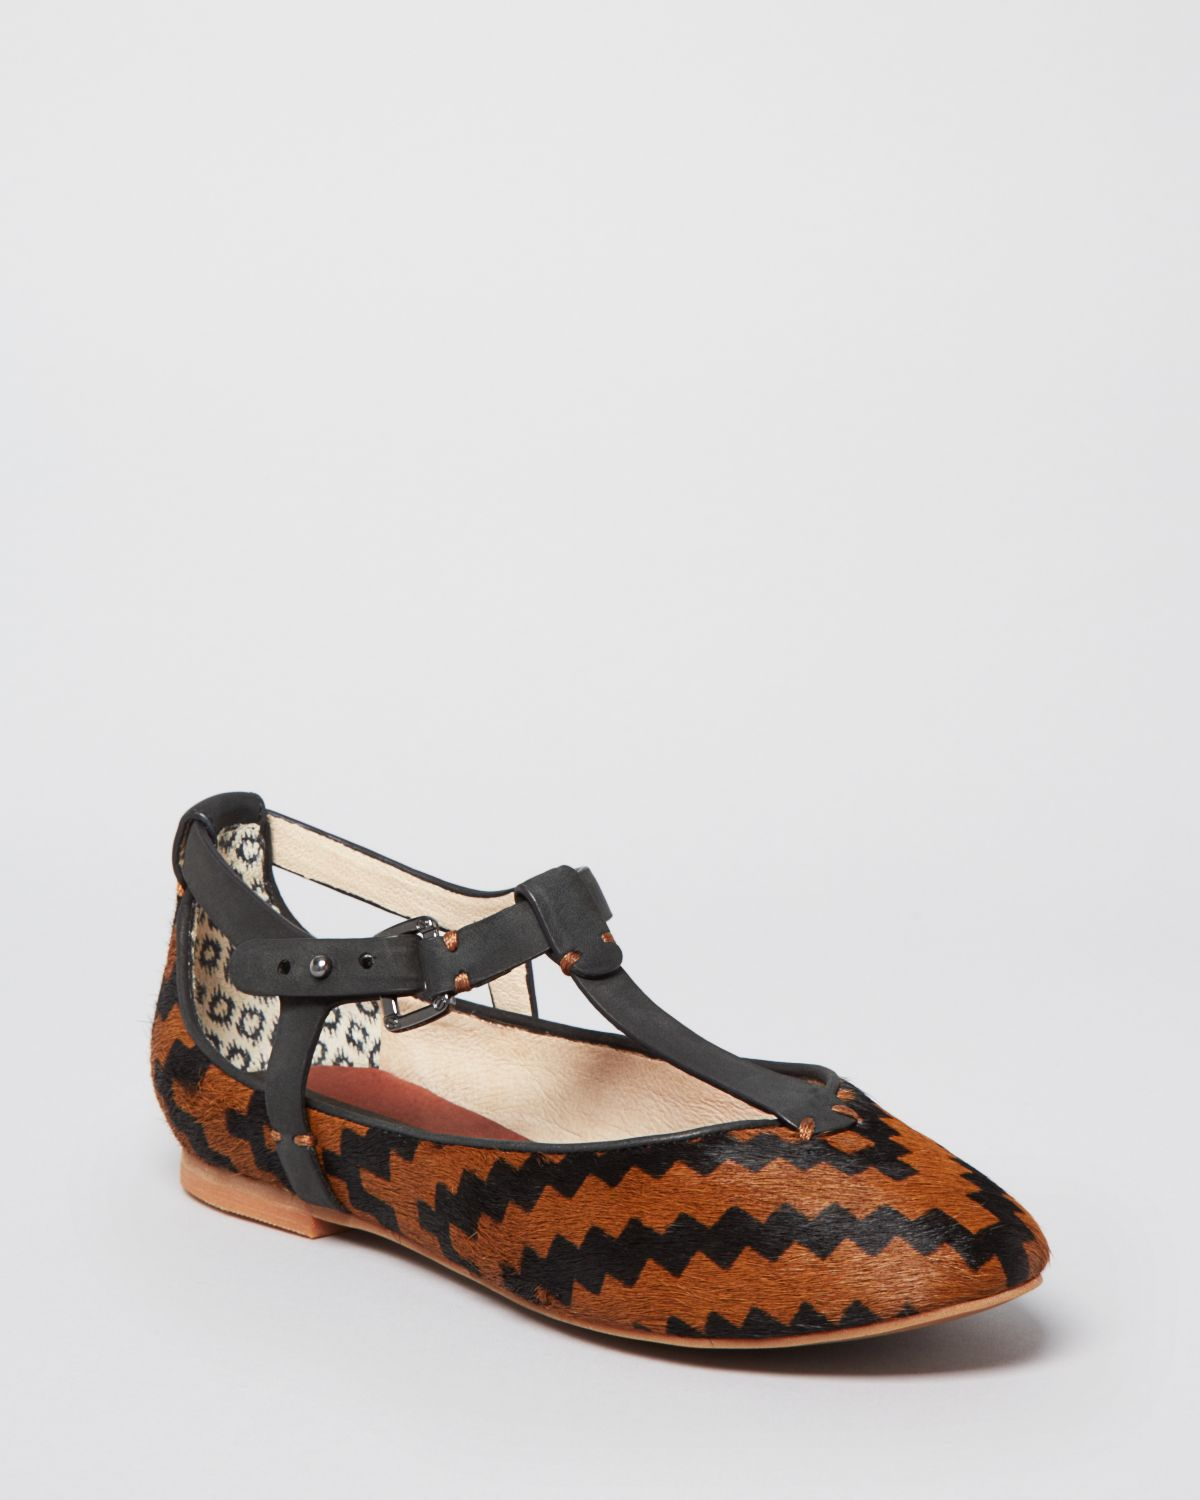 Tribal Print Flates - Comfy ballet flats that are perfect for everyday use. Size 7 1/2 but runs small. Slightly worn. #shoes #flats #tribalprint #blackandwhite #nice #cheap.